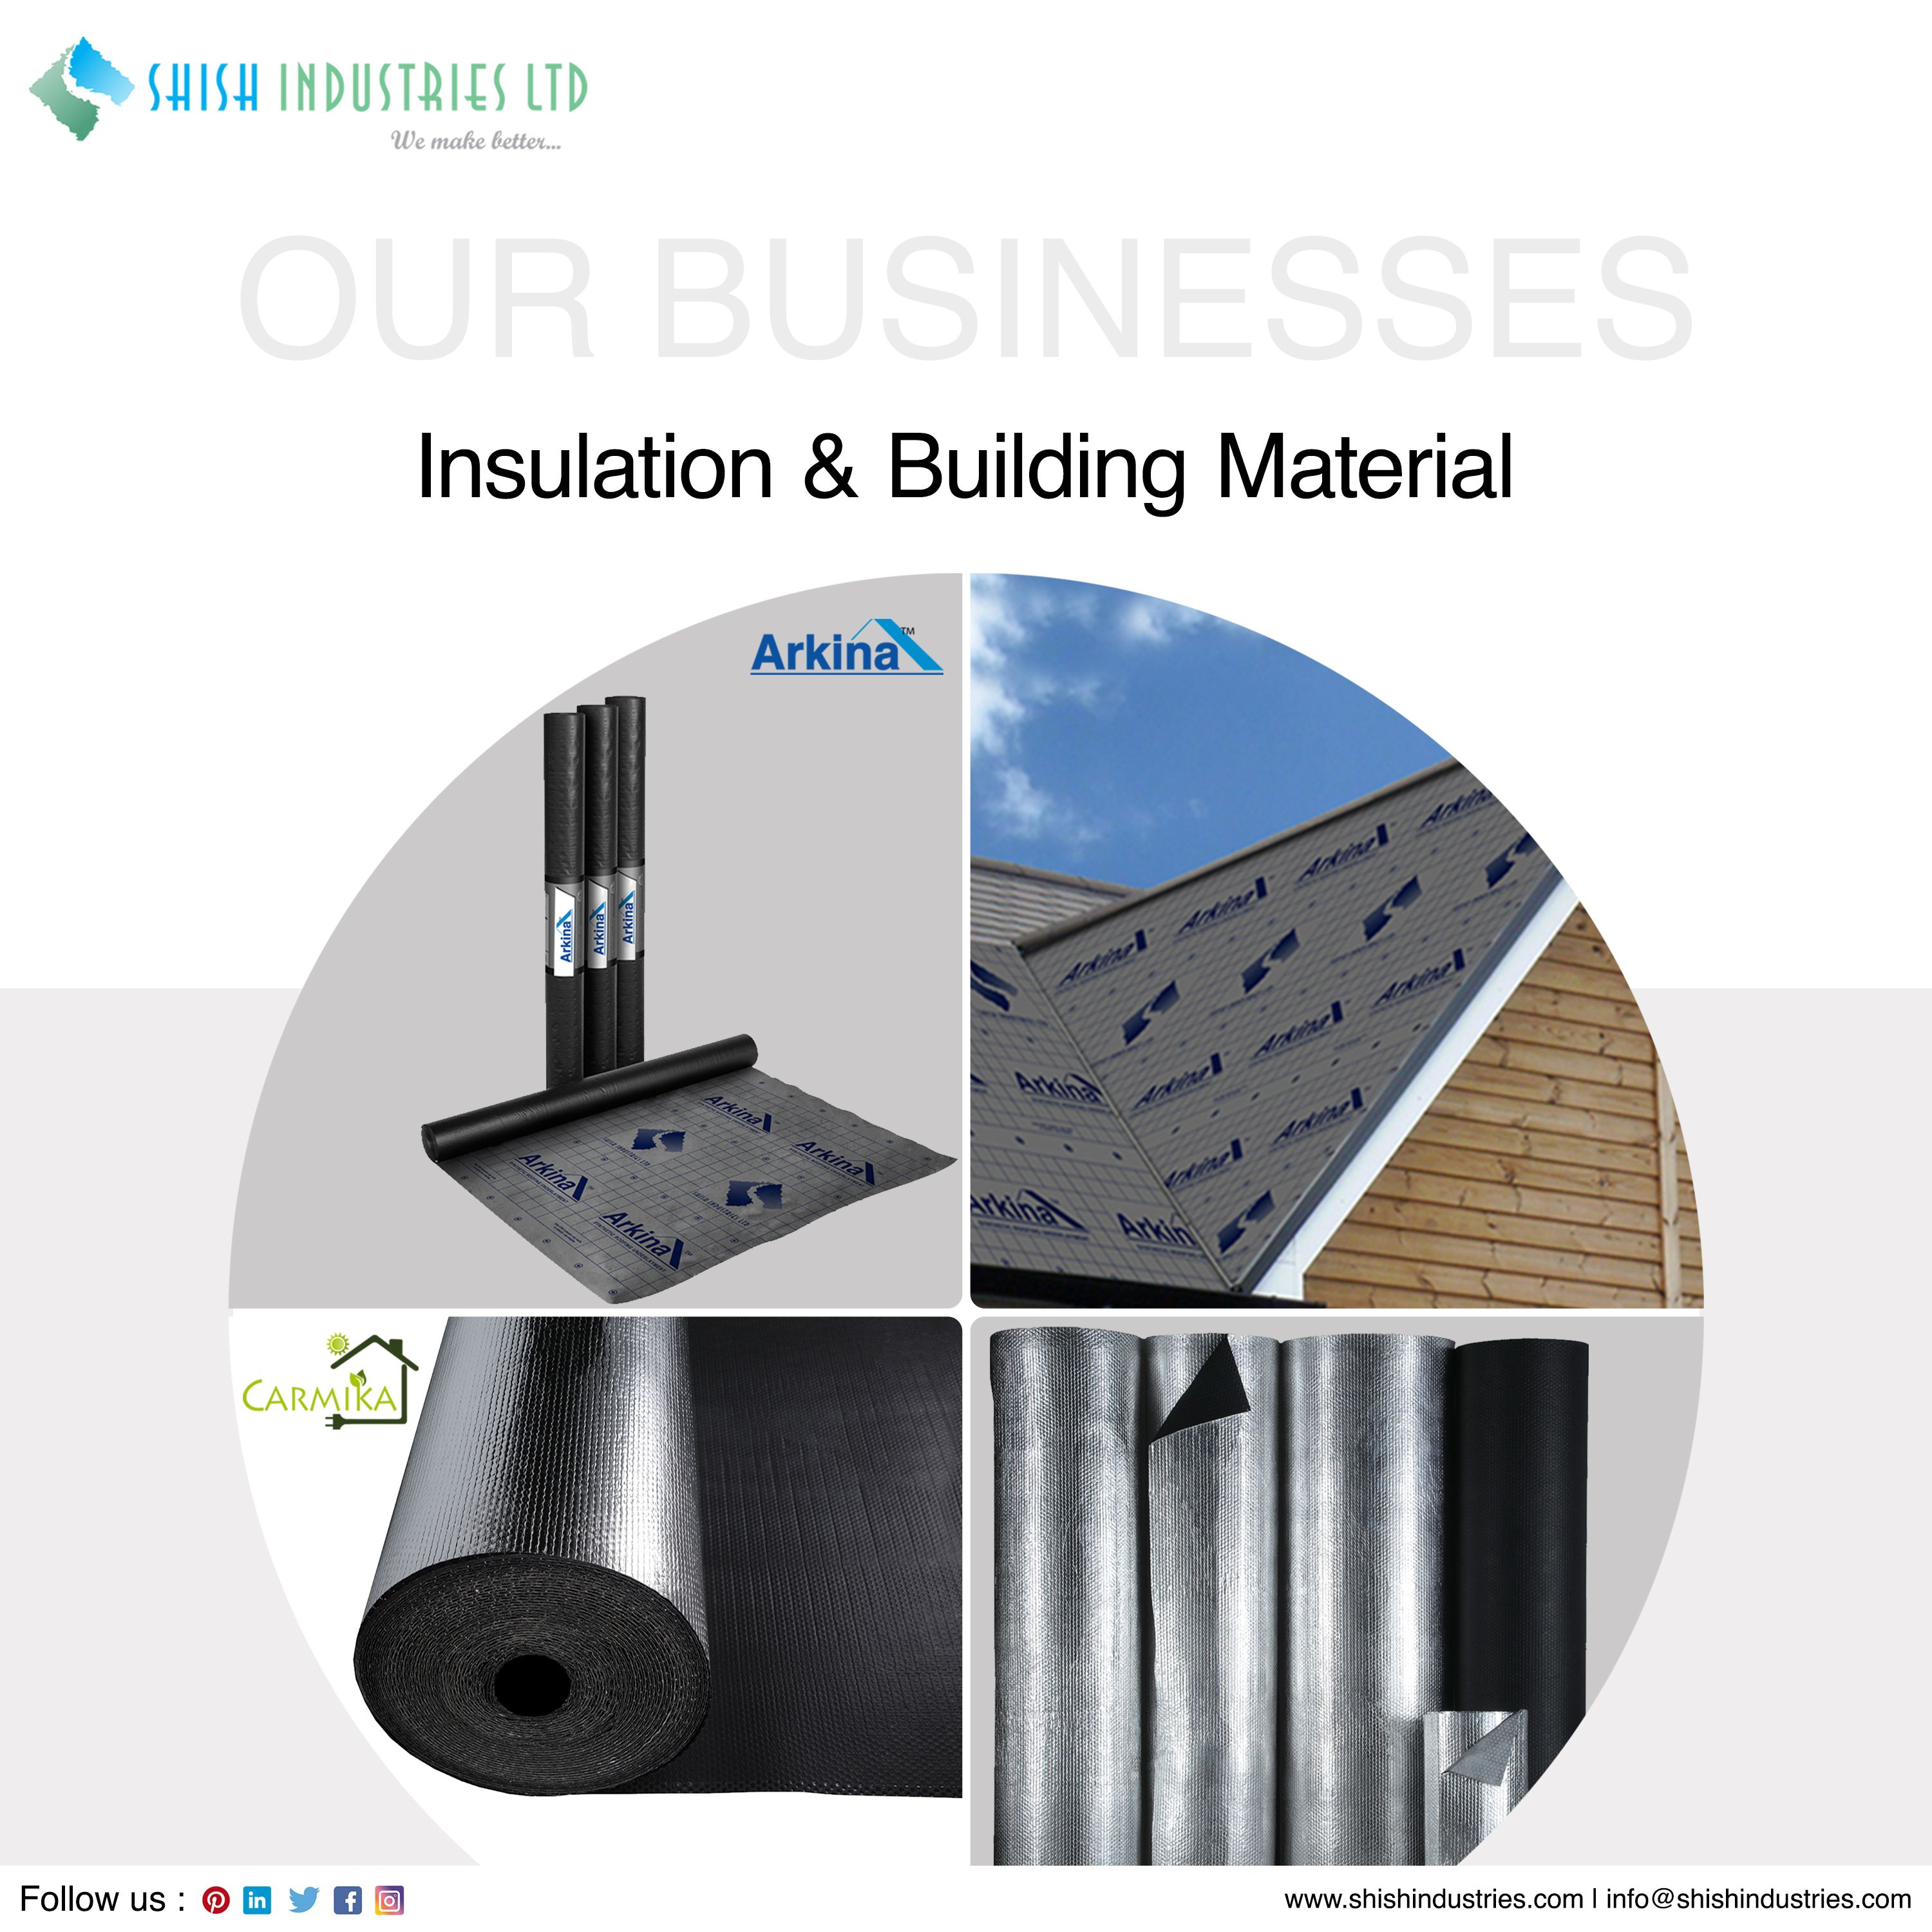 Arkina Arkina Synthetic Roof Underlayment Offers Effective Secondary Protection For Roofs Insulation Materials Corrugated Plastic Corrugated Plastic Sheets